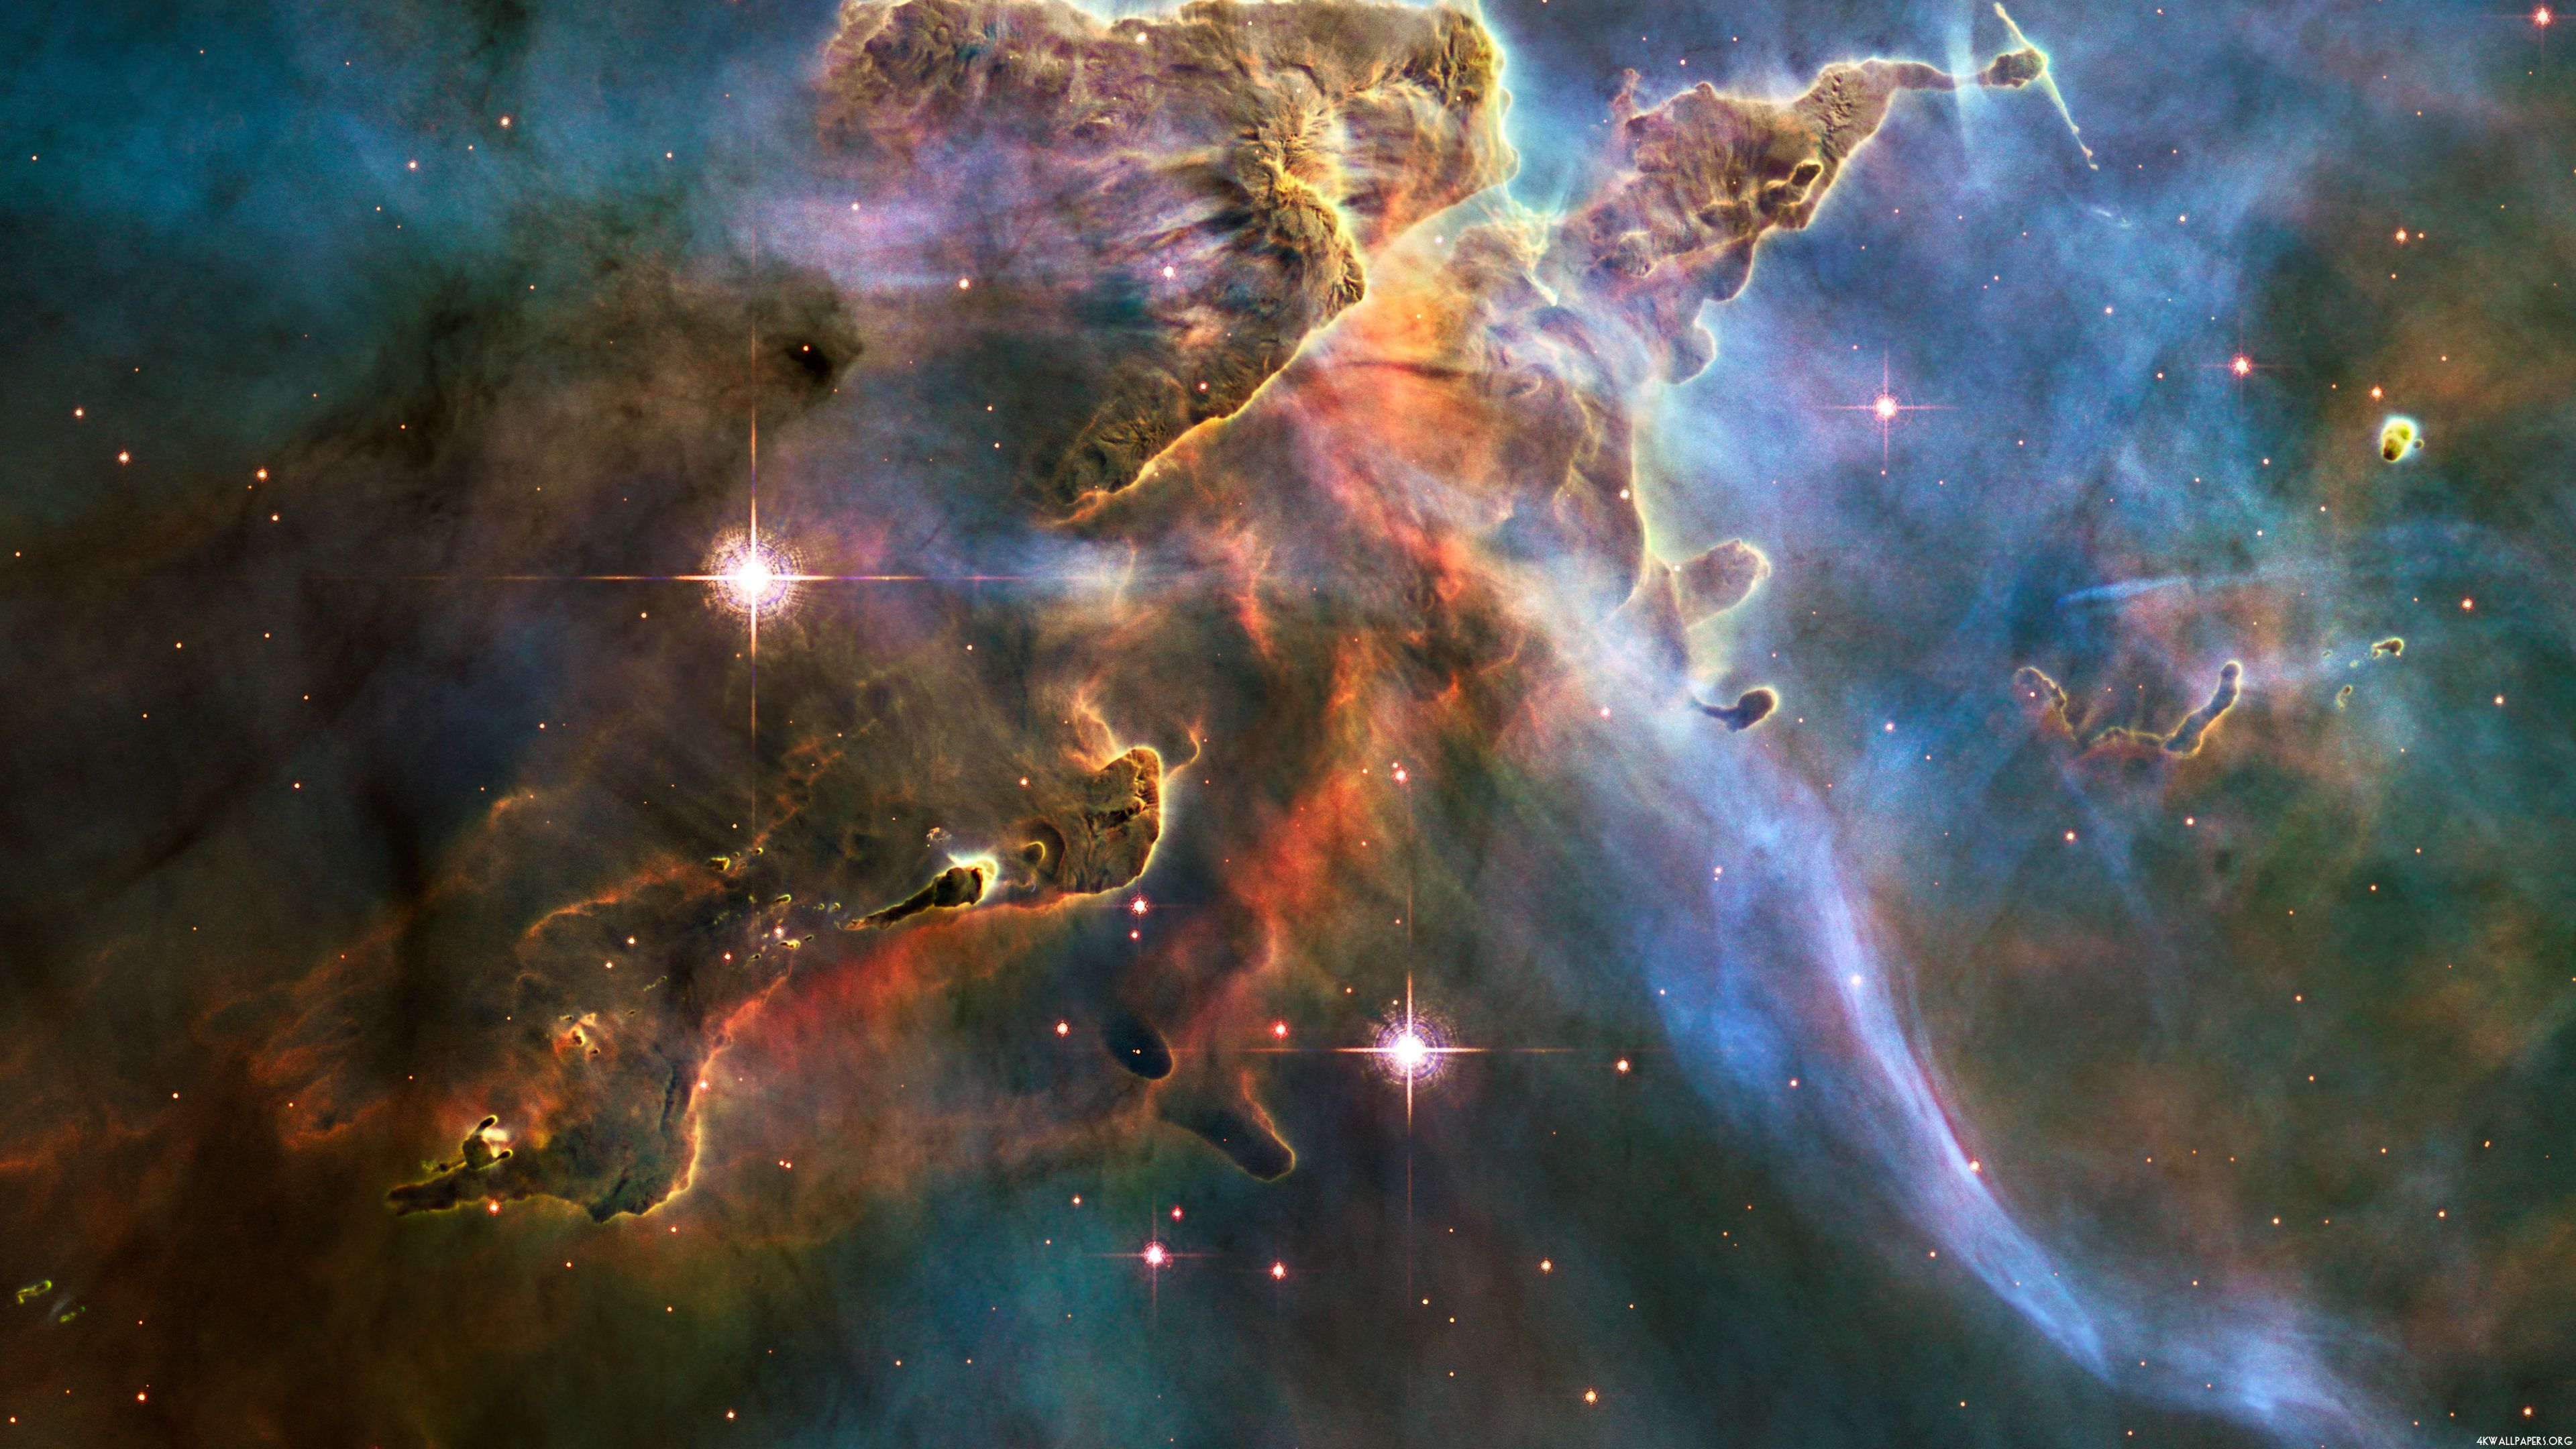 Ultra Hd Space Wallpapers Top Free Ultra Hd Space